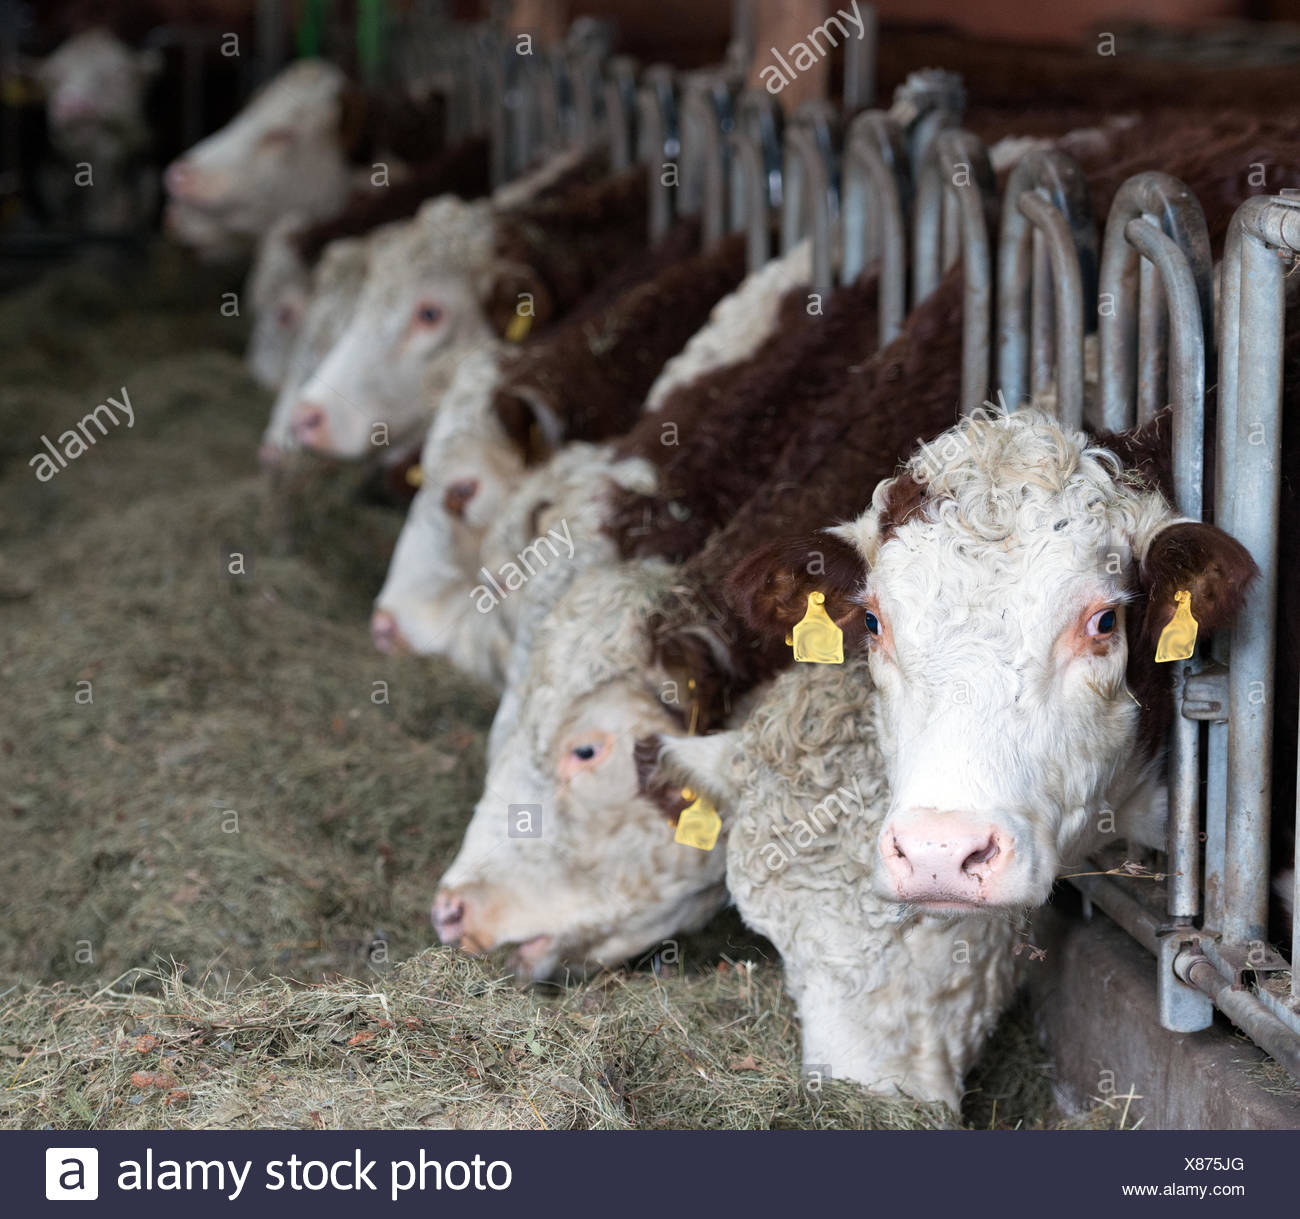 Cows in Stable - Stock Image